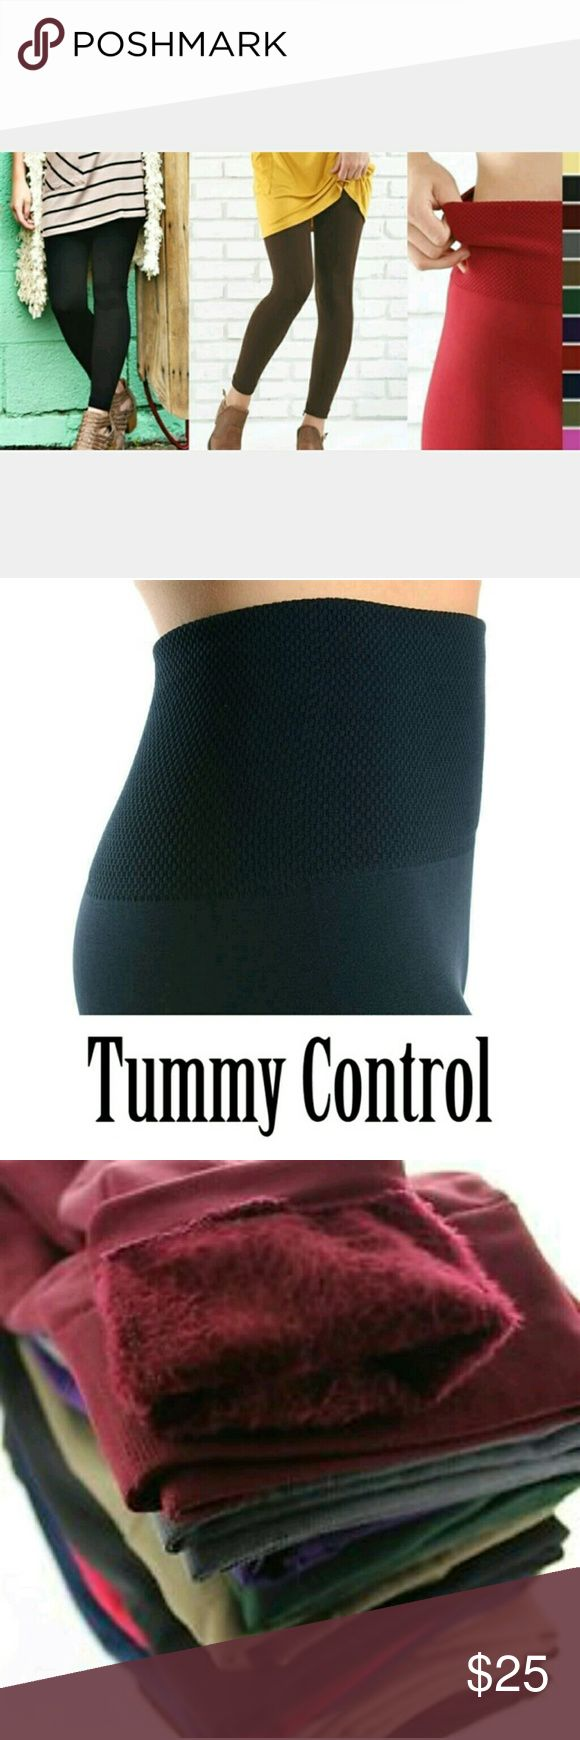 Super #tummy control #high-waisted#leggings TONS OF COLORS!  dark purple,  khaki, olive green,  coral,  mint,  nude.... Alot. Just to many. Lol. I love mine I own 6 different colors and they are some serious tummy and butt control   Free gift when u spend over $10 Or with any bundles  #pink #victoriassecret #pants #spring #boutique #H&M Leggings #colorful #americaneagle #brandymelville #bundle #makeoffers   DON'T BE AFRAID TO OFFER! THAT'S WHAT I'M HERE FOR LADIES XOXOXOOXOX boutique Pants…